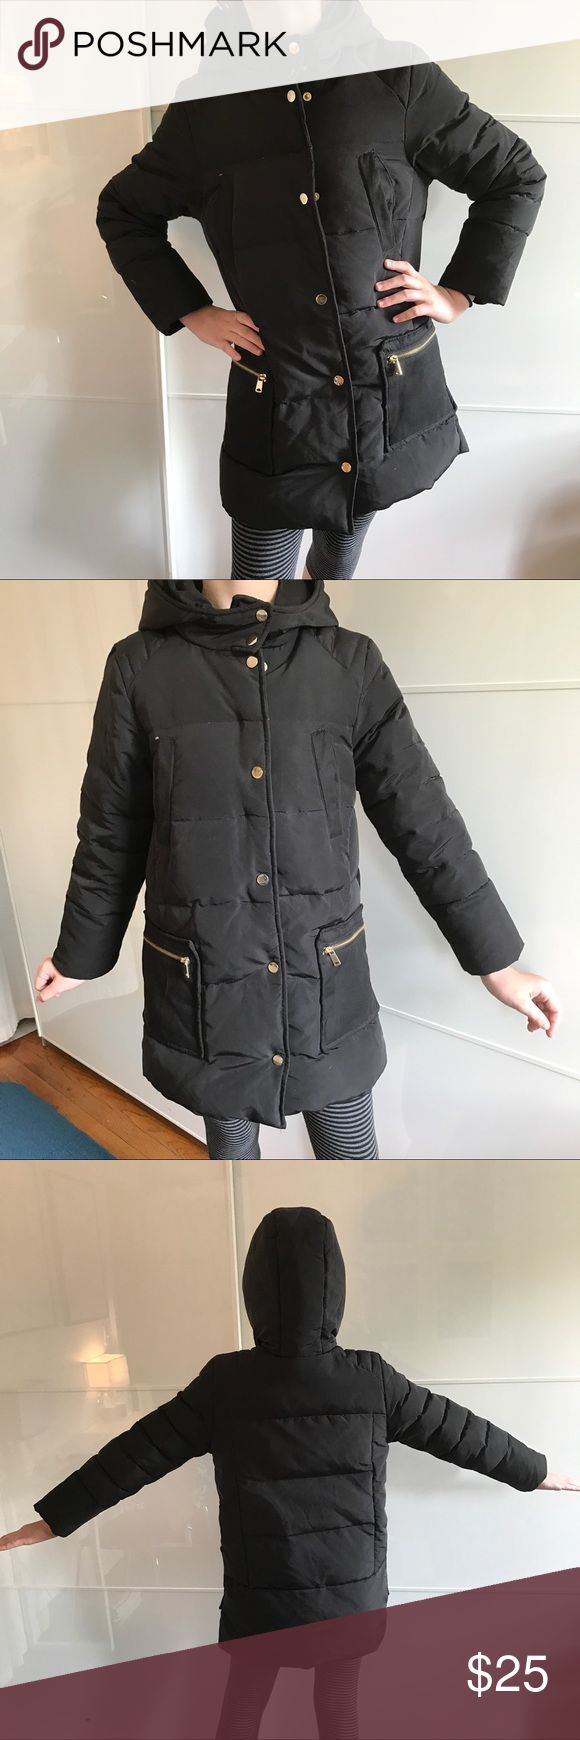 Girl 9-10 winter jacket, down+feather, black, ZARA Black winter jacket, girl 9-10 years old, 50% down and 50% feather = !warm!, by ZARA, golden zippers and snap buttons, with hood, worn but in good condition Zara Jackets & Coats Puffers